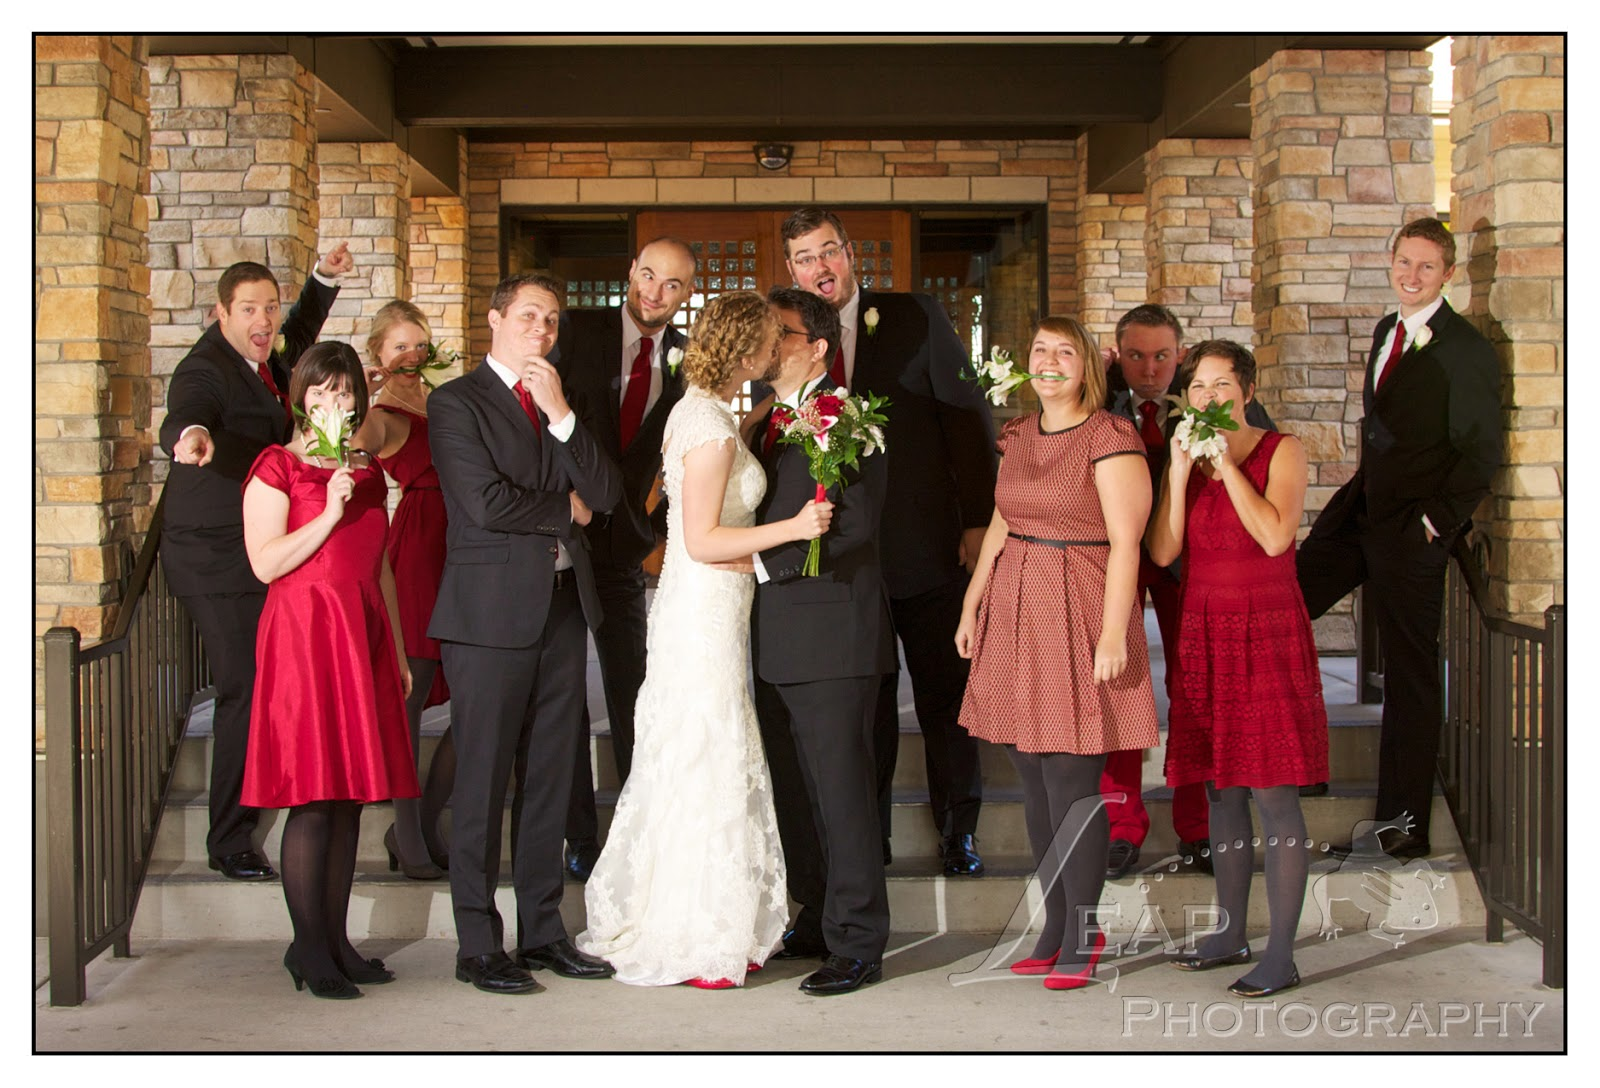 fun photo of the wedding party